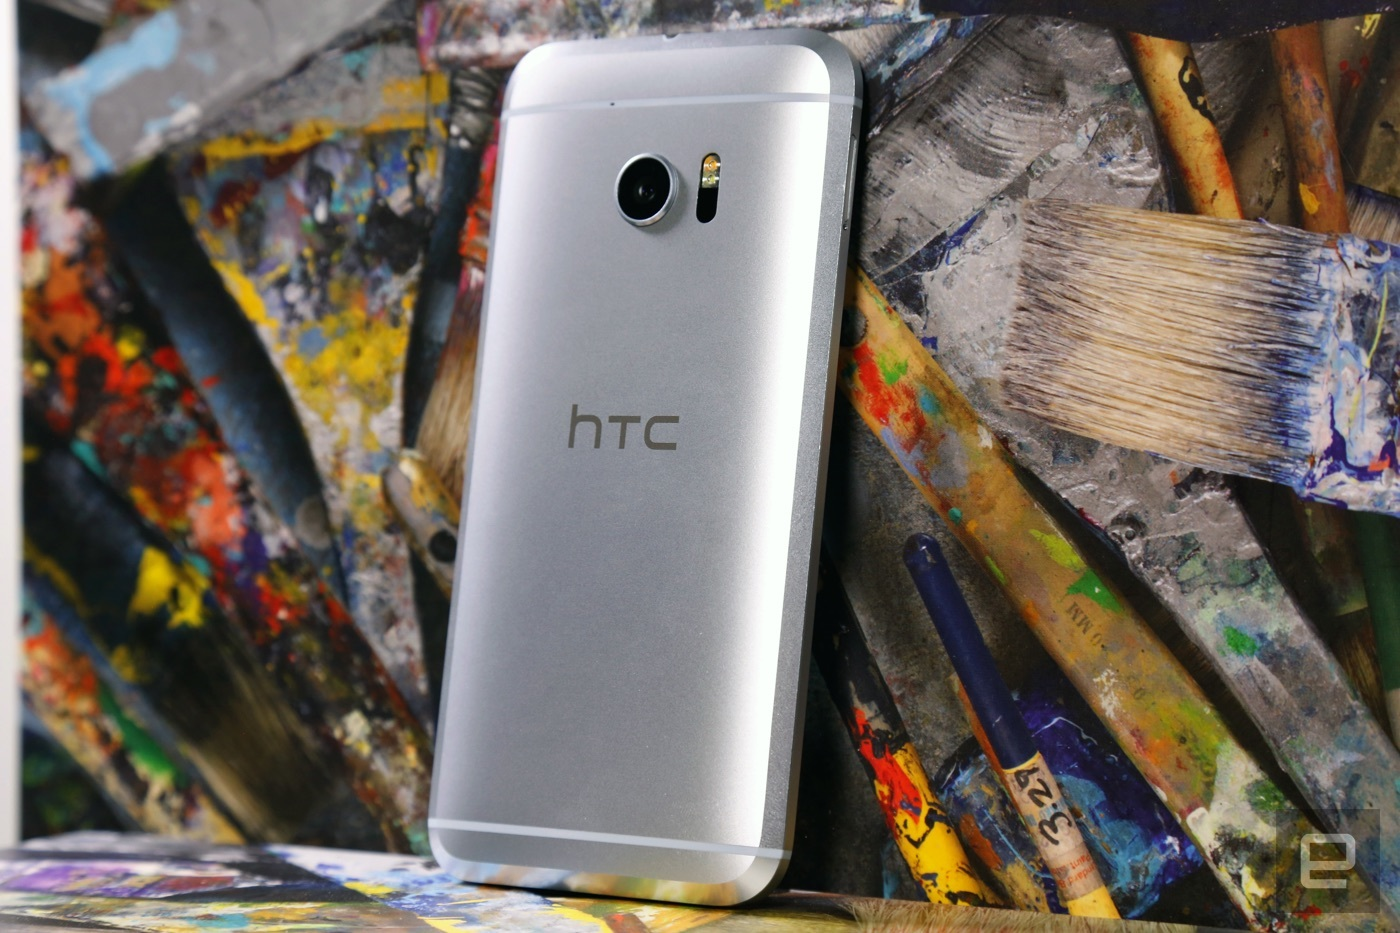 HTC sales fell off a cliff